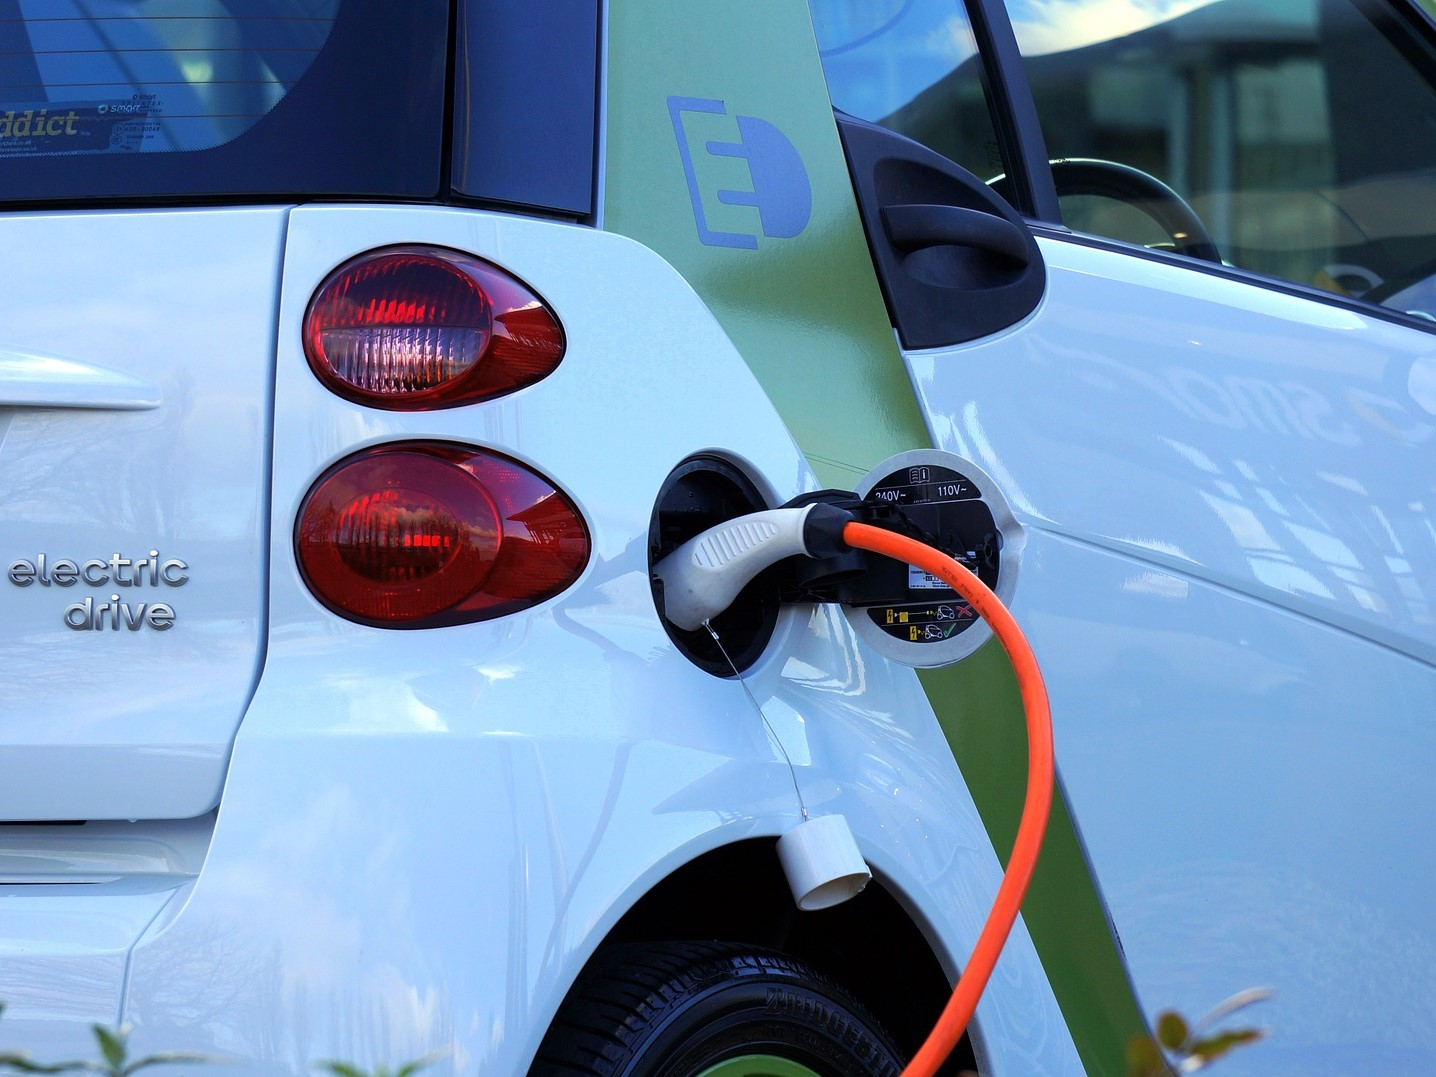 Charing the electric auto. Image Credit:  MikesPhotos / Pixabay